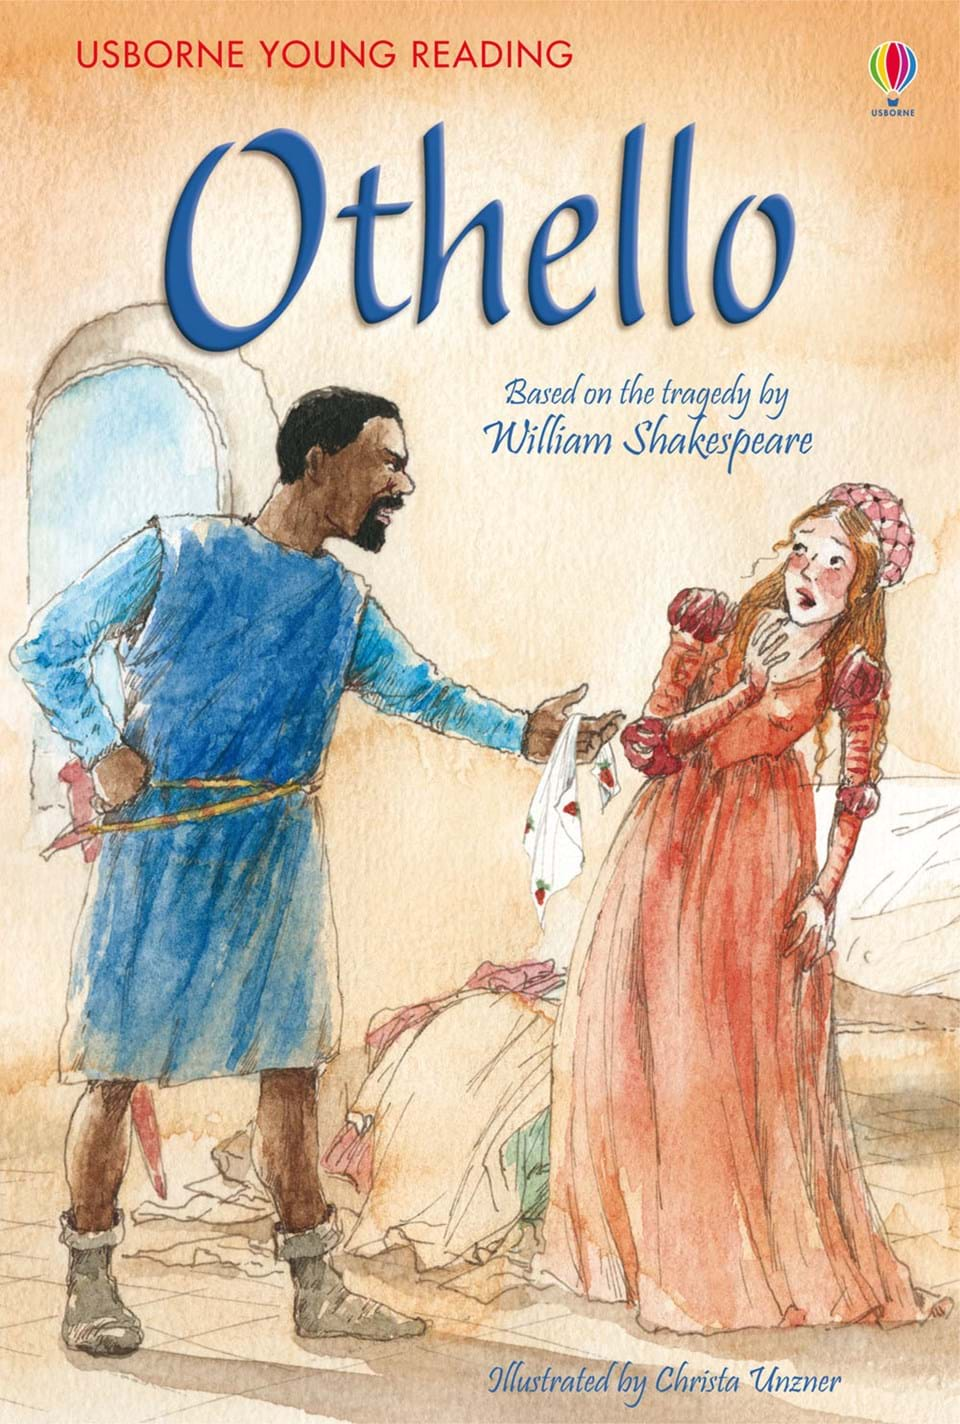 the demise of othello in william shakespeares othello Othello is one of william shakespeare's most well-known plays and is  makes iago manipulate everyone around him to cause othello's tragic demise.